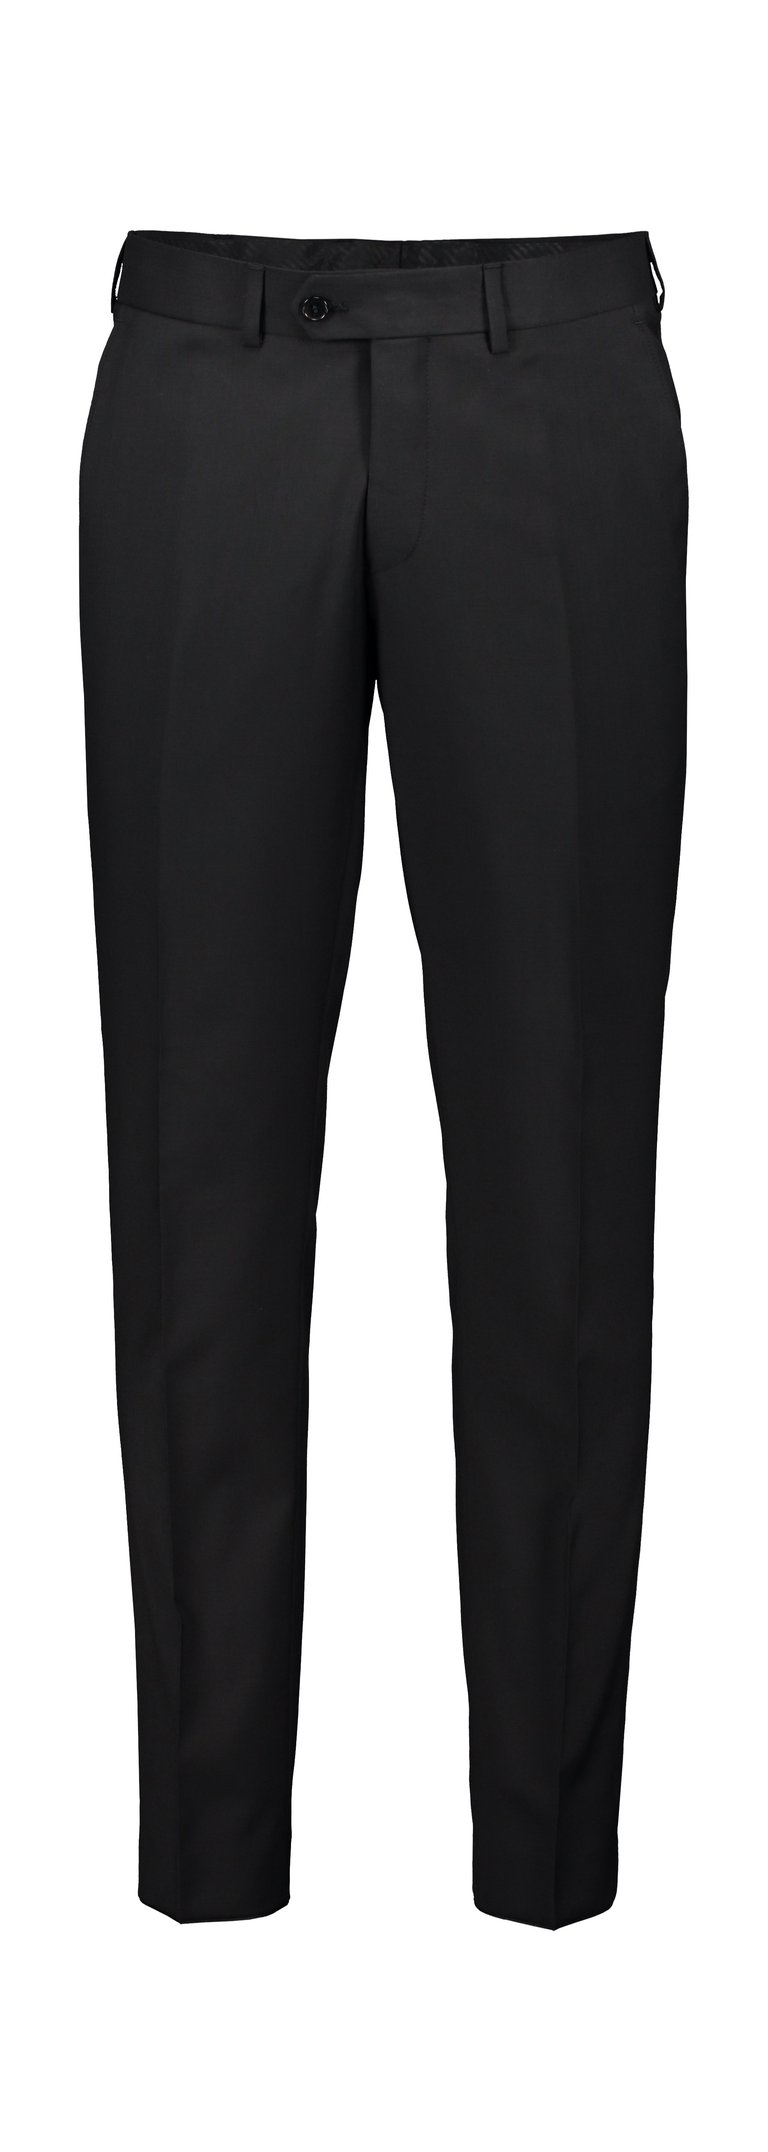 Turo Slim fit Helsinki trousers Black